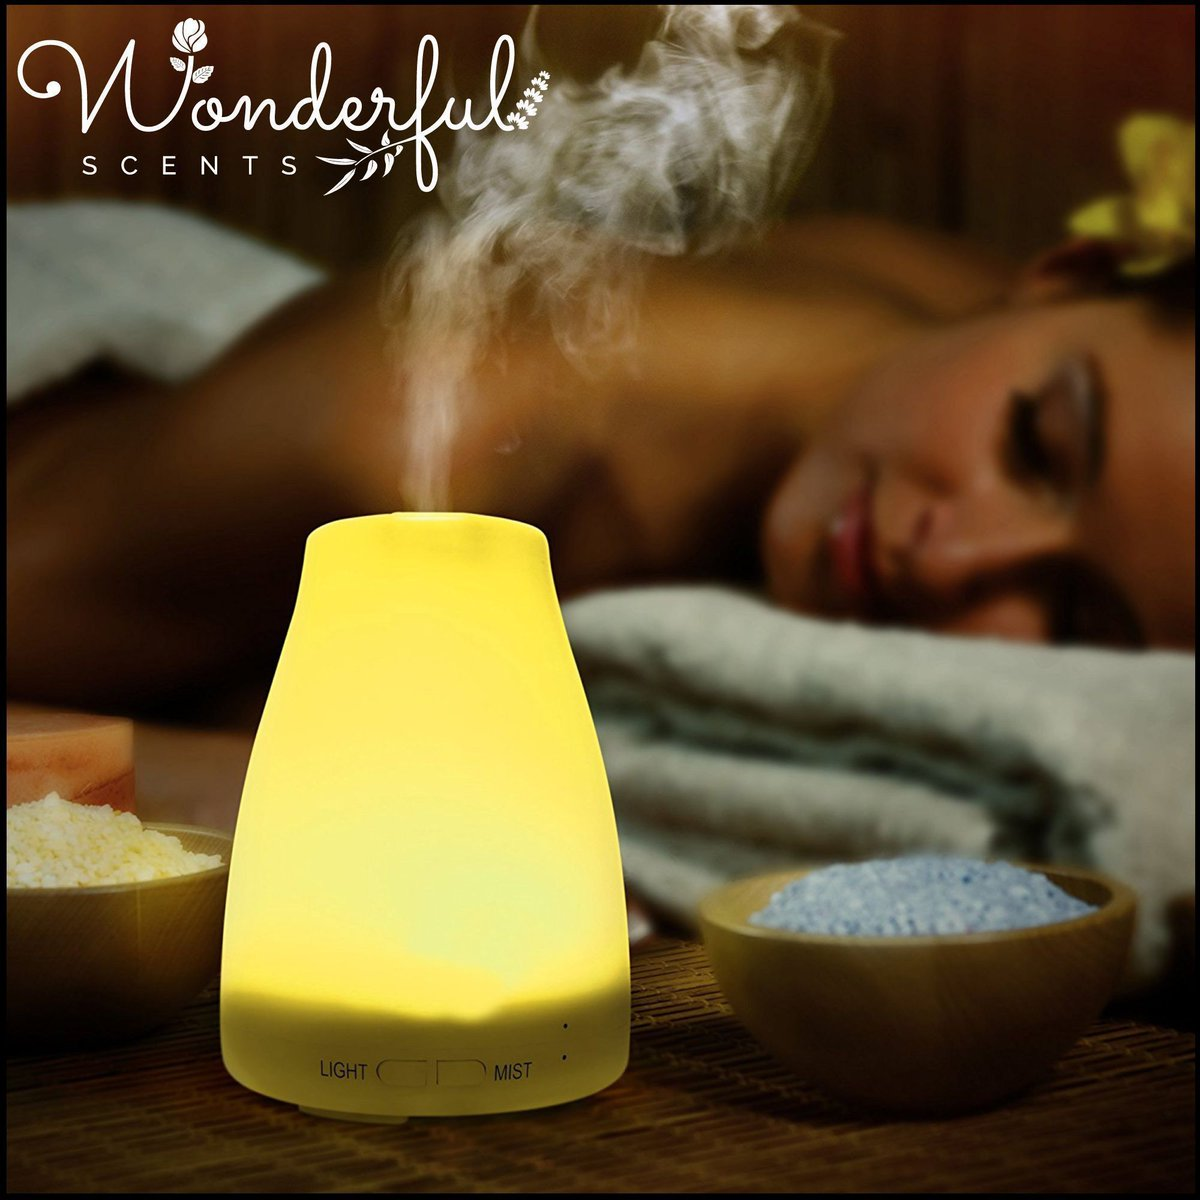 Wonderful Scents Aromatherapy Diffusers https://t.co/AiyQeDI0kc  #essentialoils #essentialoil #scents #fragrance #aromas #diffuser #natural #organic #aromatherapy #selfcare #selflove #healthy #gifts #giftsforher #relax #Wellbeing #wellness #HealthTips #candles #candle #soycandles https://t.co/SOTCaU6tDf